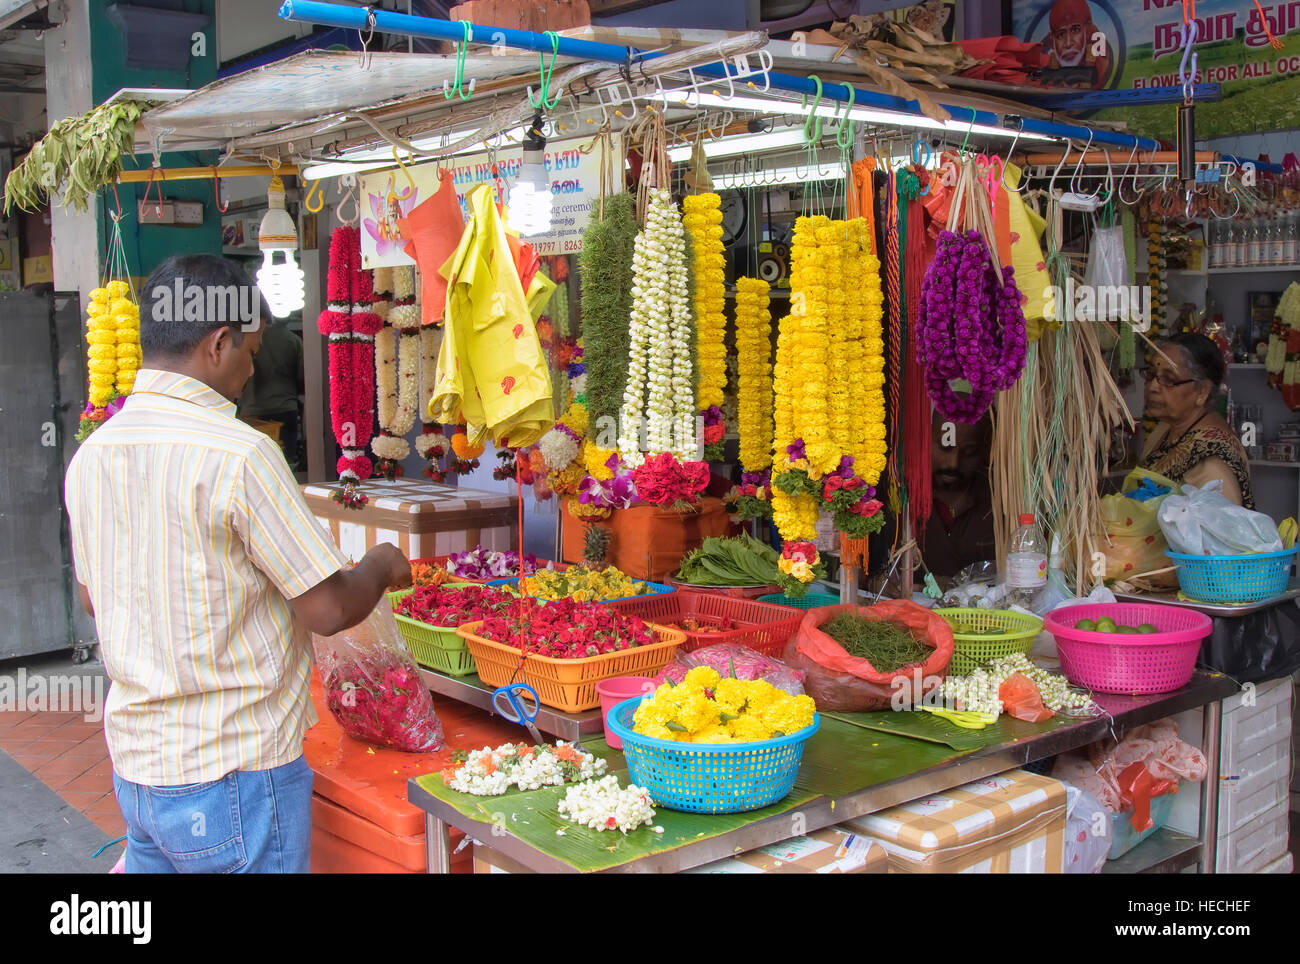 Market stall in Little India, Singapore - Stock Image